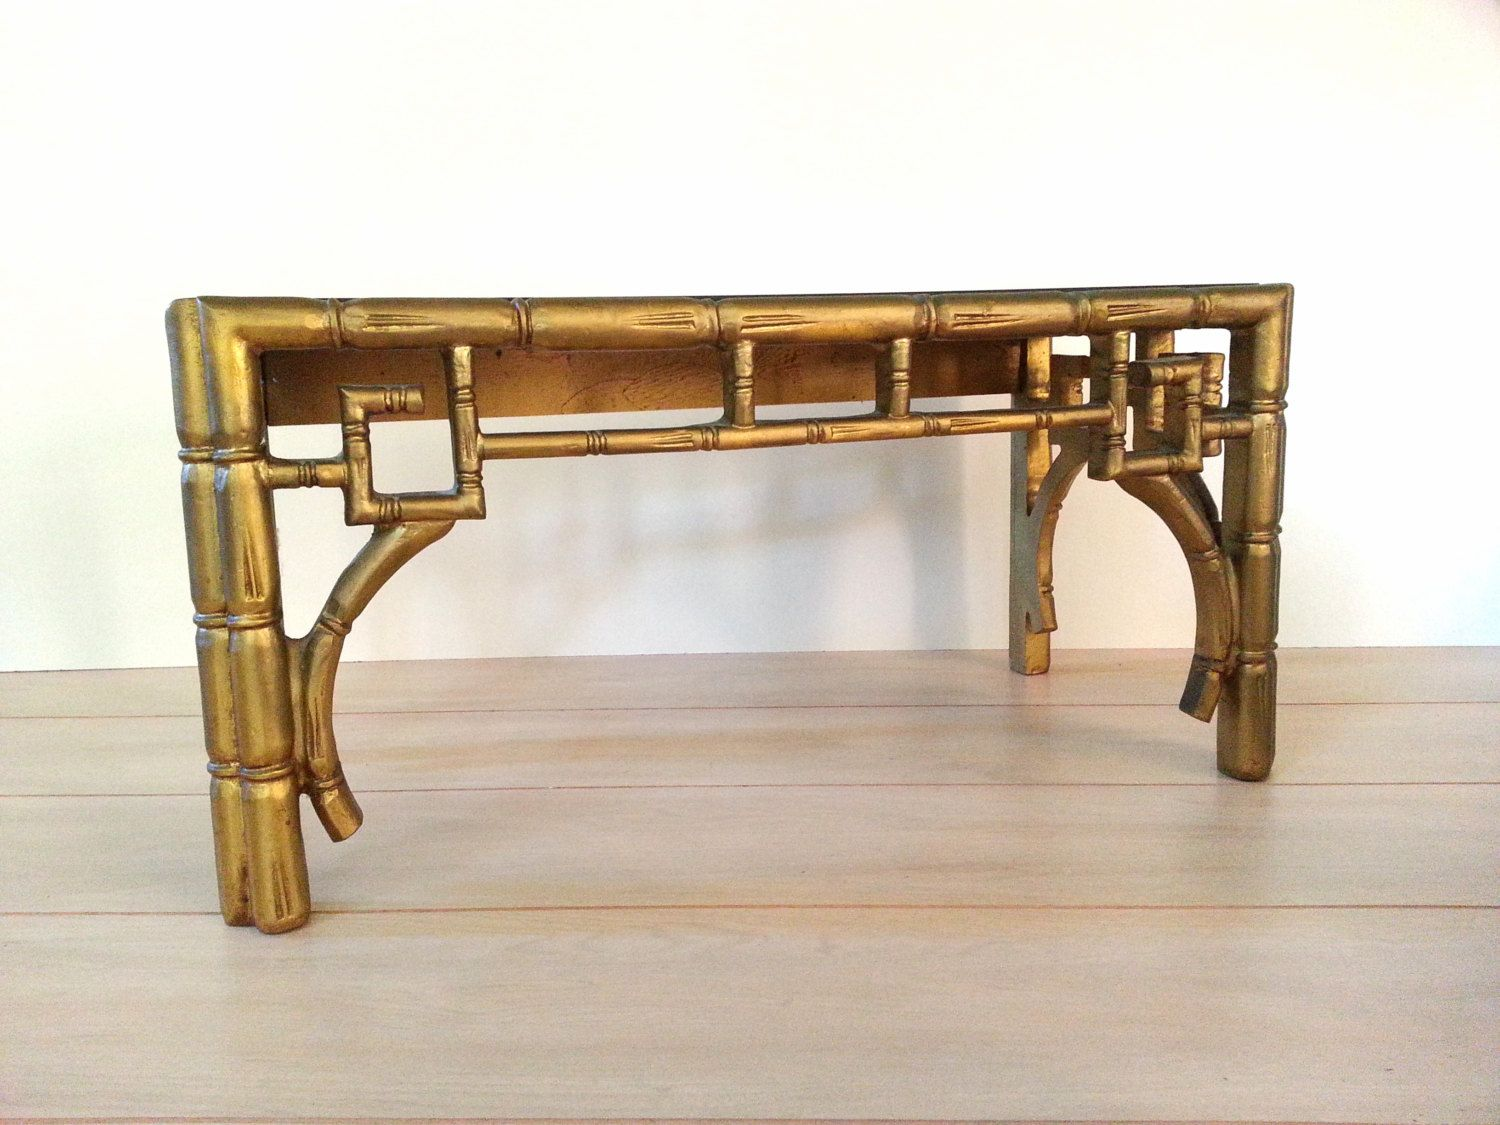 Vintage Table Chinoiserie Faux Bamboo Coffee Table / Hollywood Regency Gold  Glass Top Side Table / Display Table Asian Home Decor By LUCKYHOMEFINDS On  Etsy